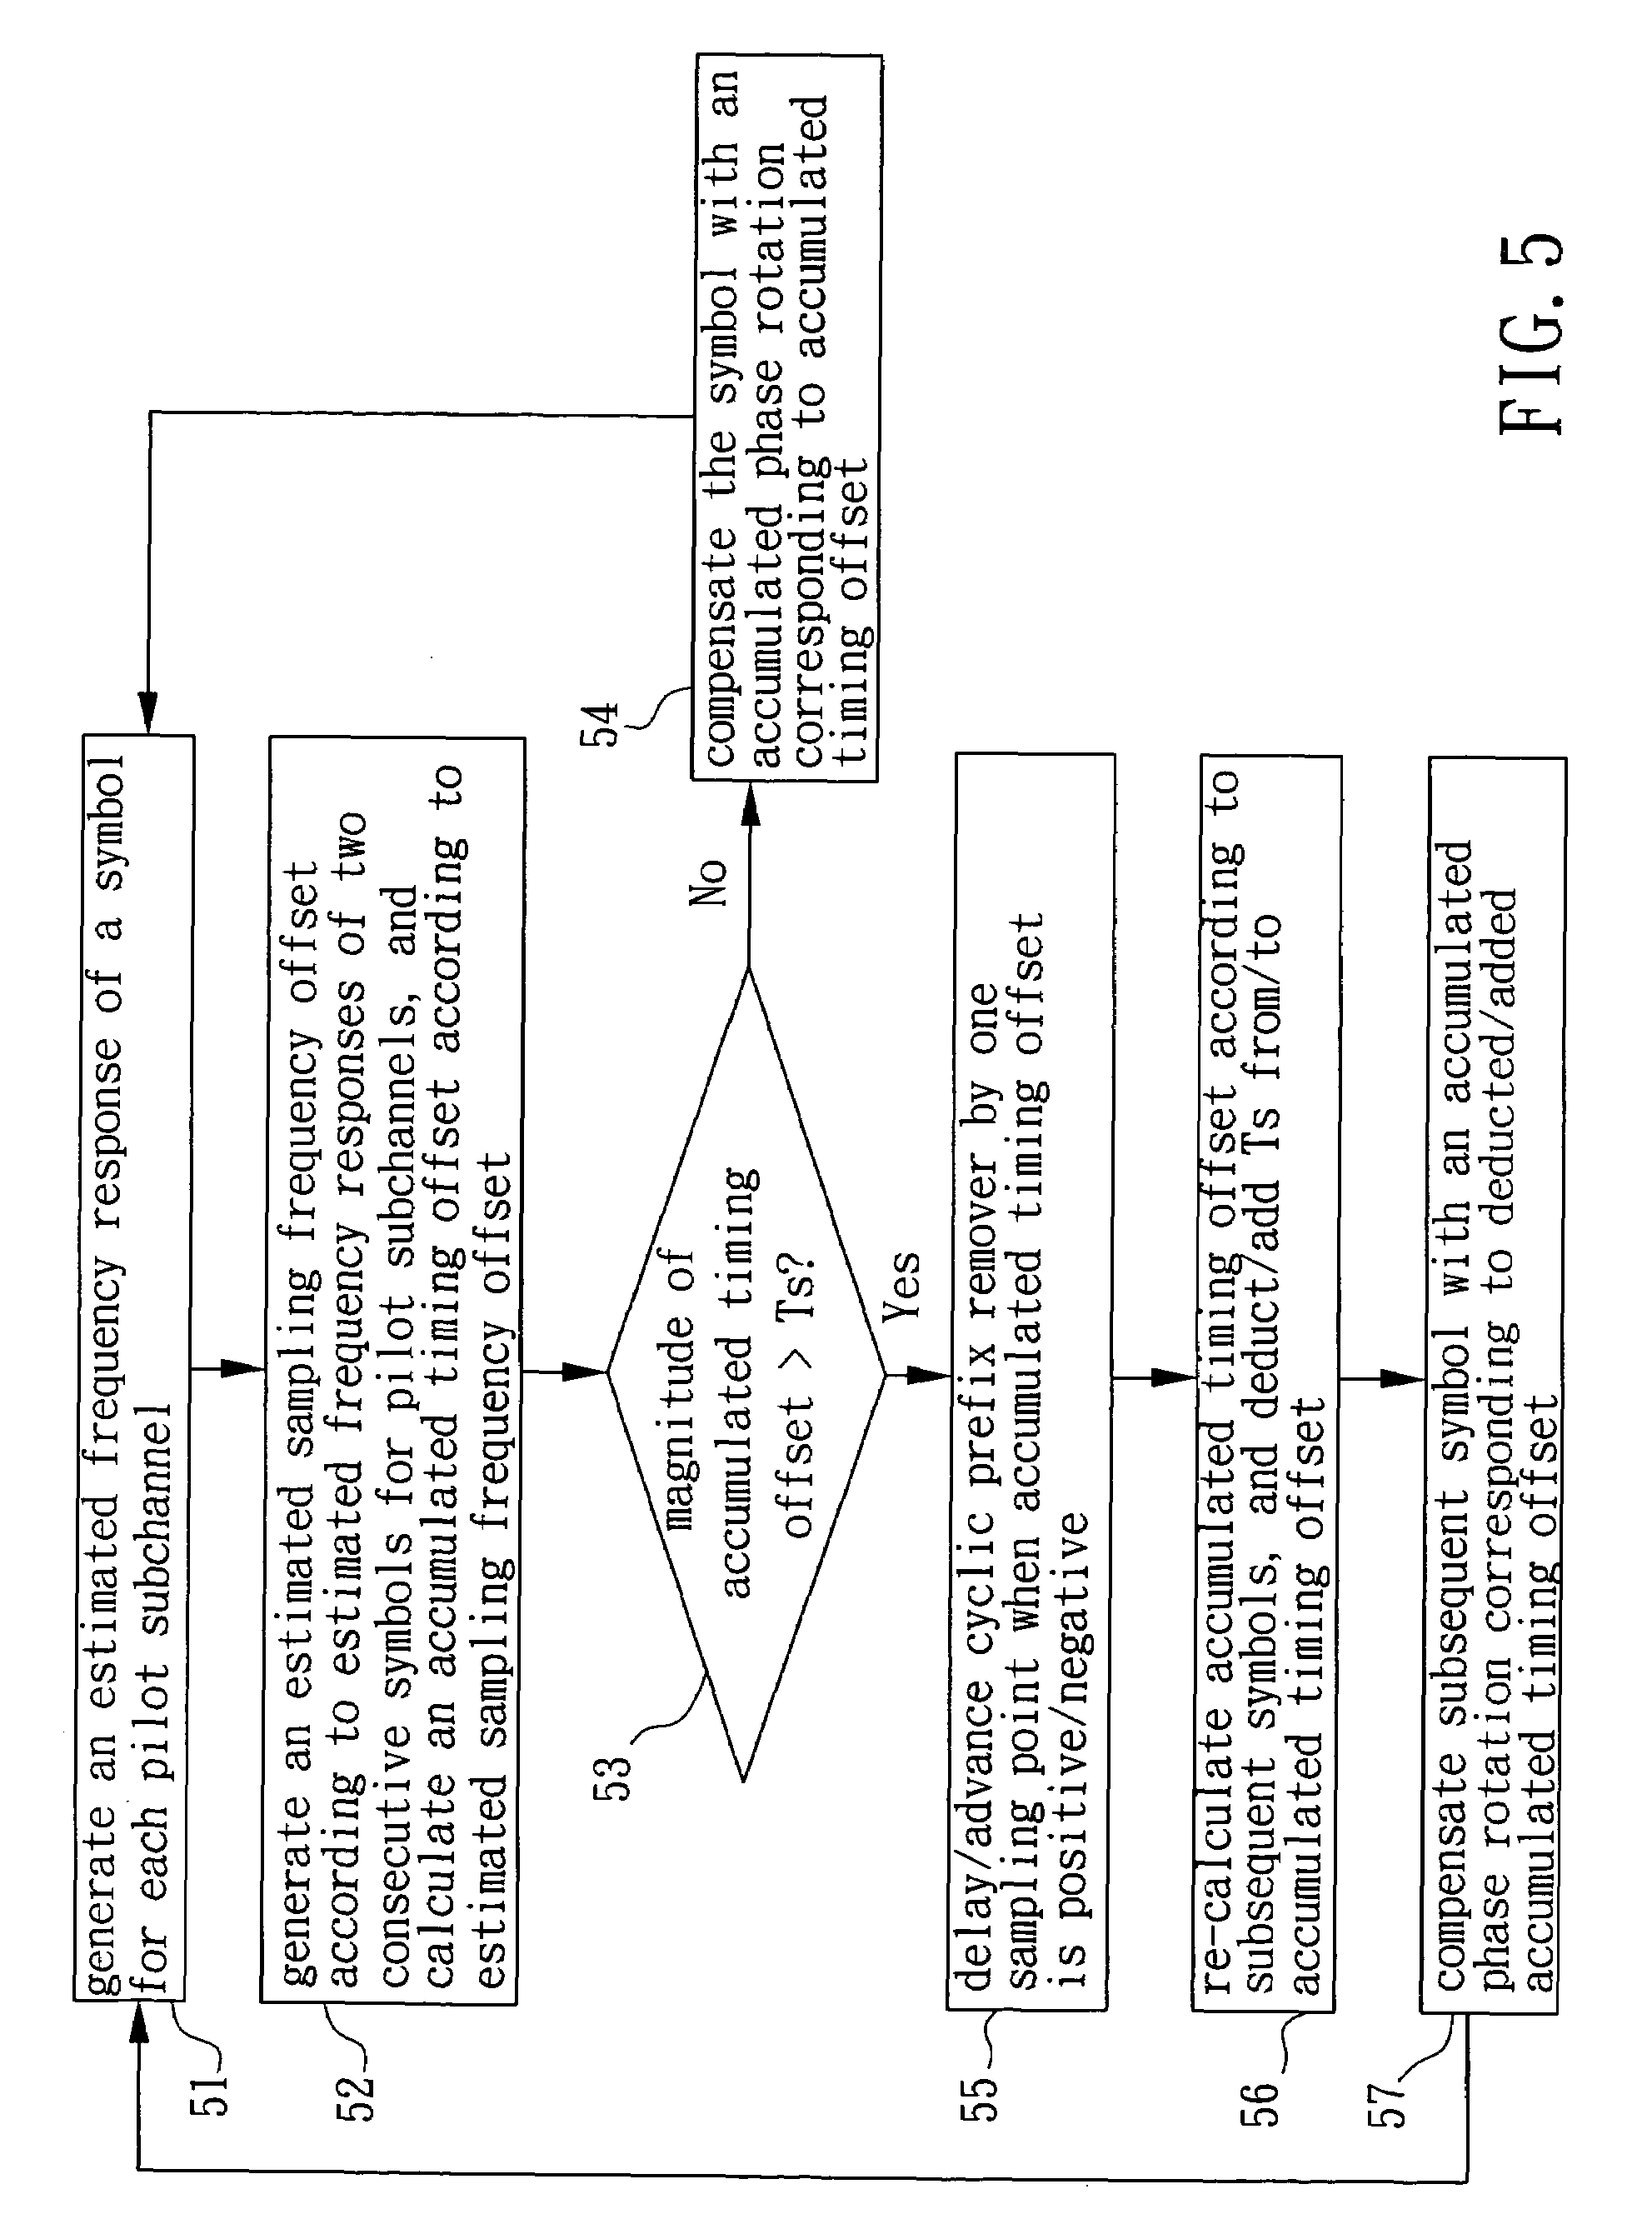 Patente Us7680197 Apparatus And Method For Sampling Timing